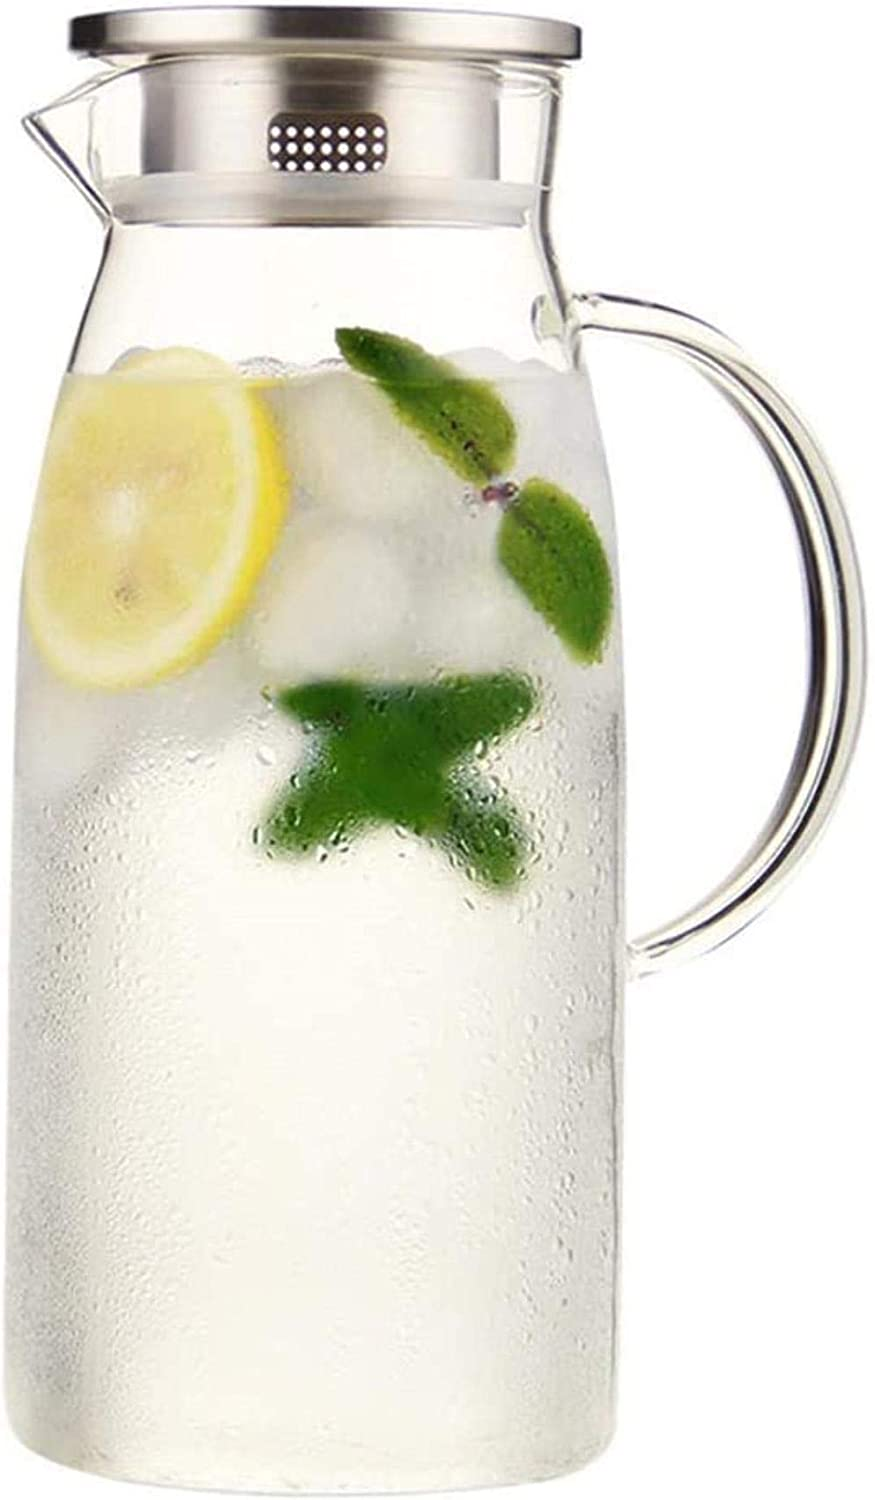 CHAIODENGZI Water Jug Ranking TOP19 Glass Pitcher With Bor Iced Raleigh Mall Lid And Handle